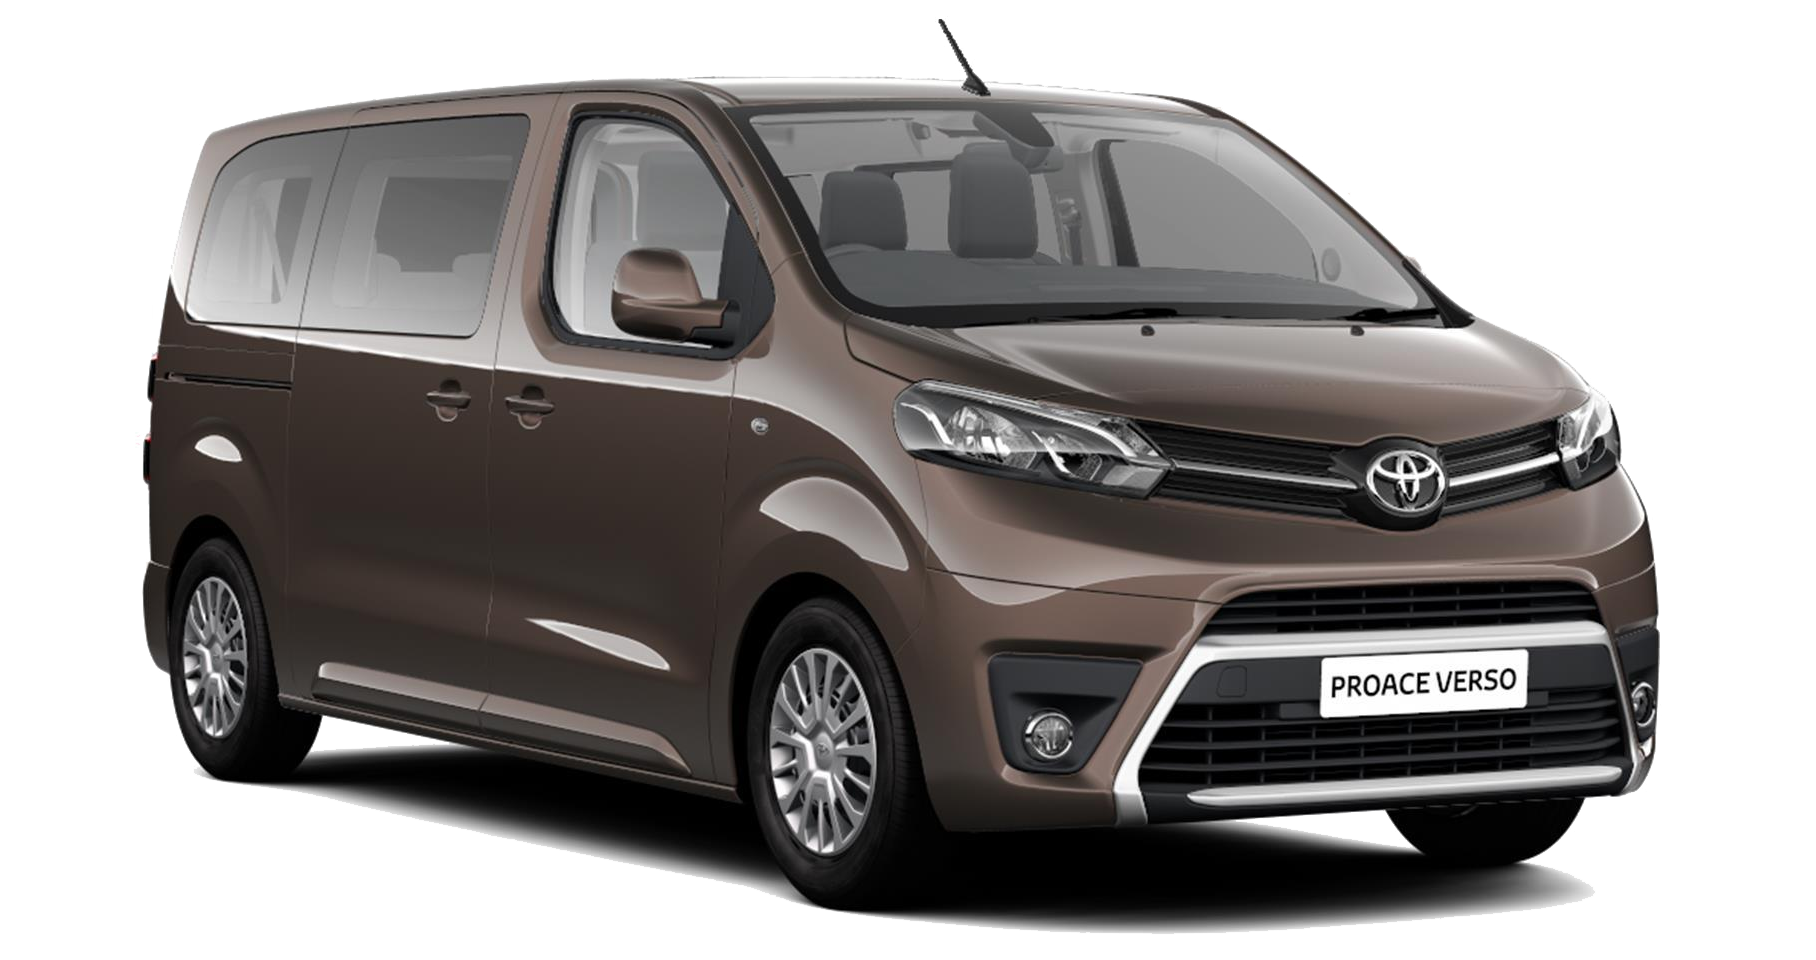 Toyota Proace Verso - Available in Rich Oak